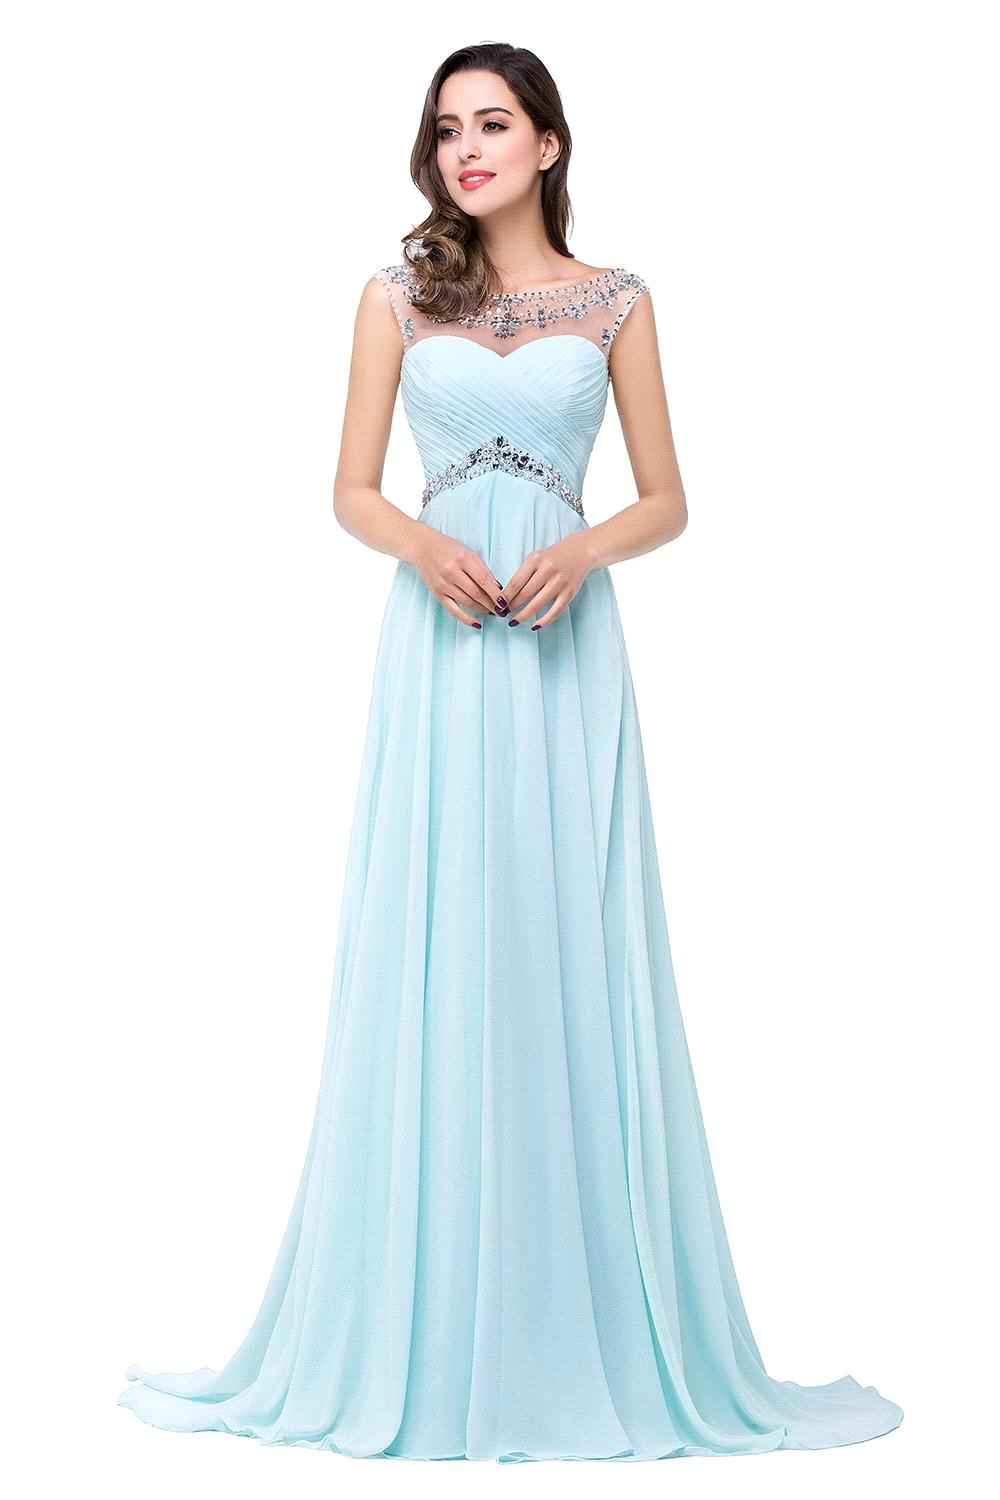 Online Get Cheap 100 Prom Dresses -Aliexpress.com | Alibaba Group